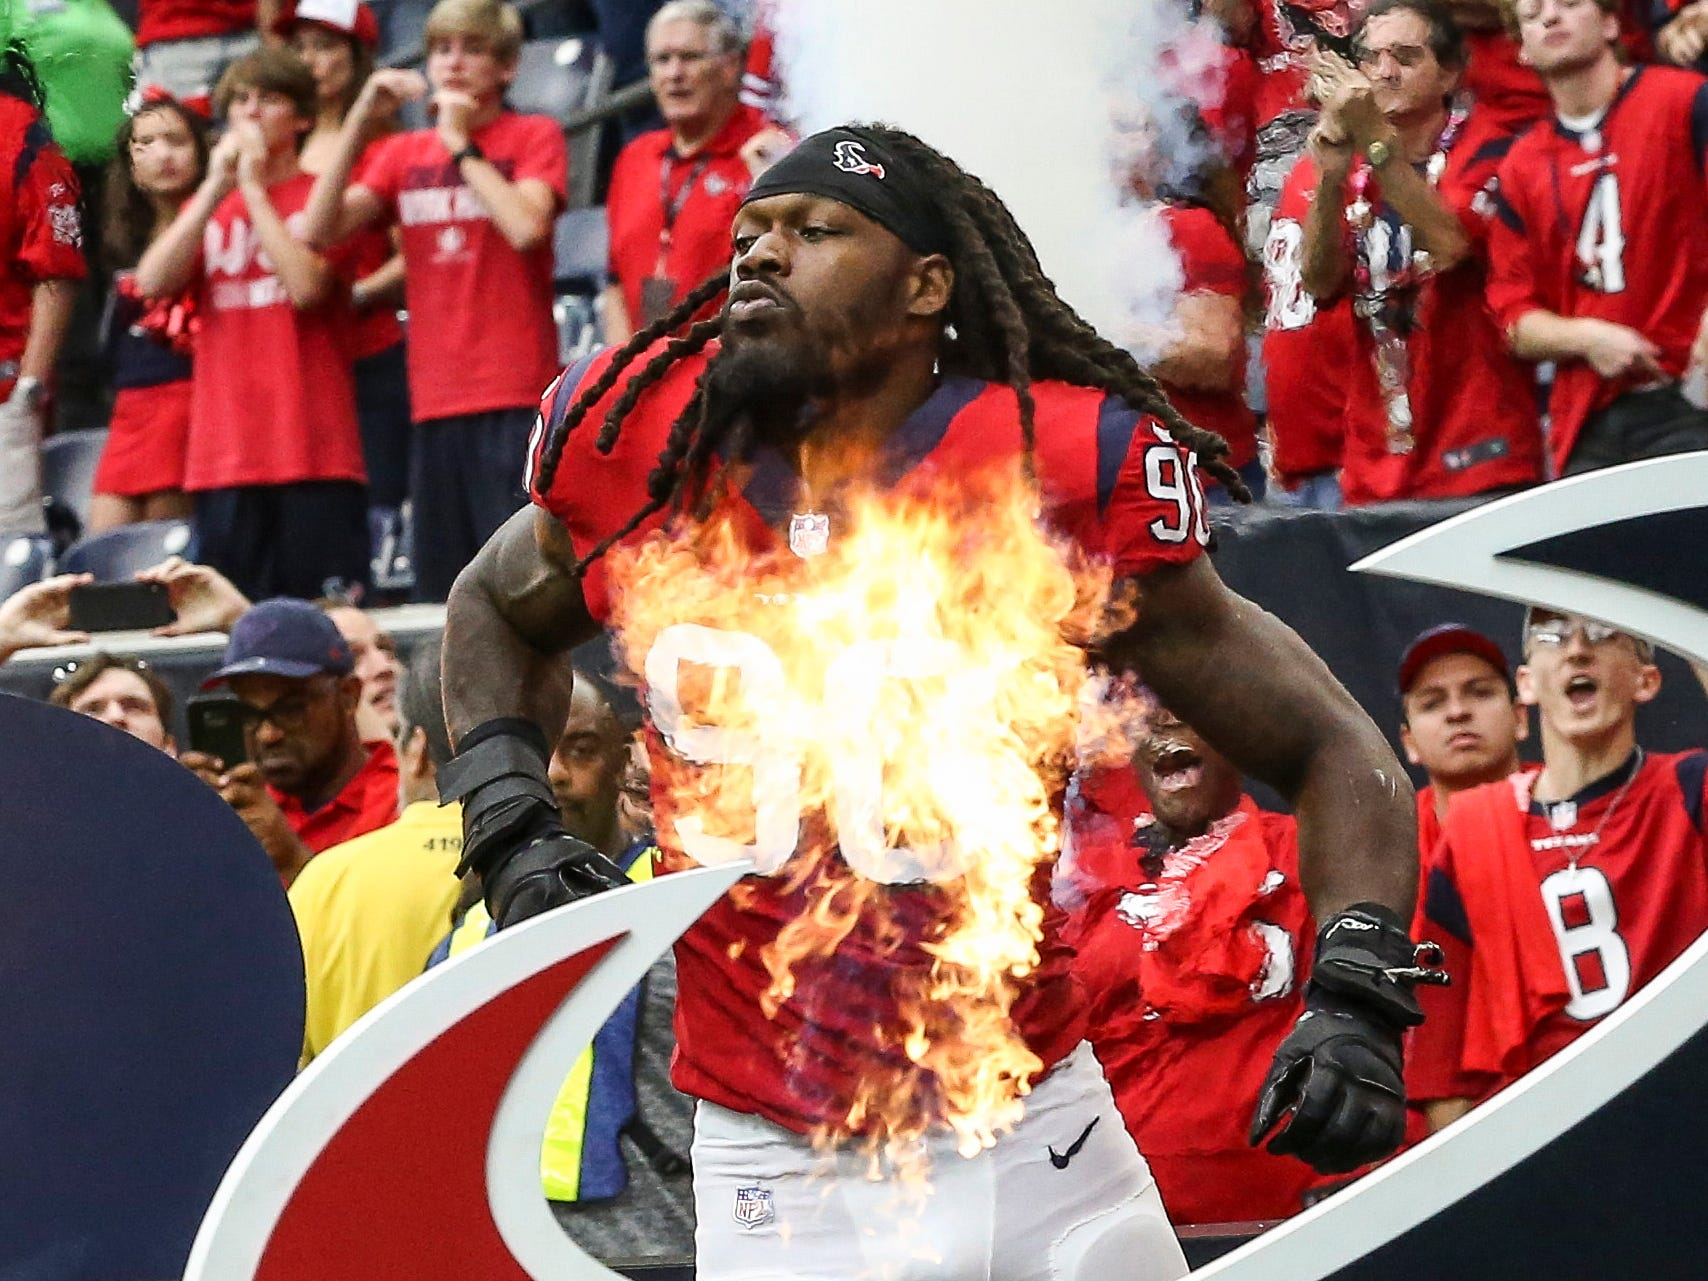 OLB - Jadeveon Clowney, Houston Texans